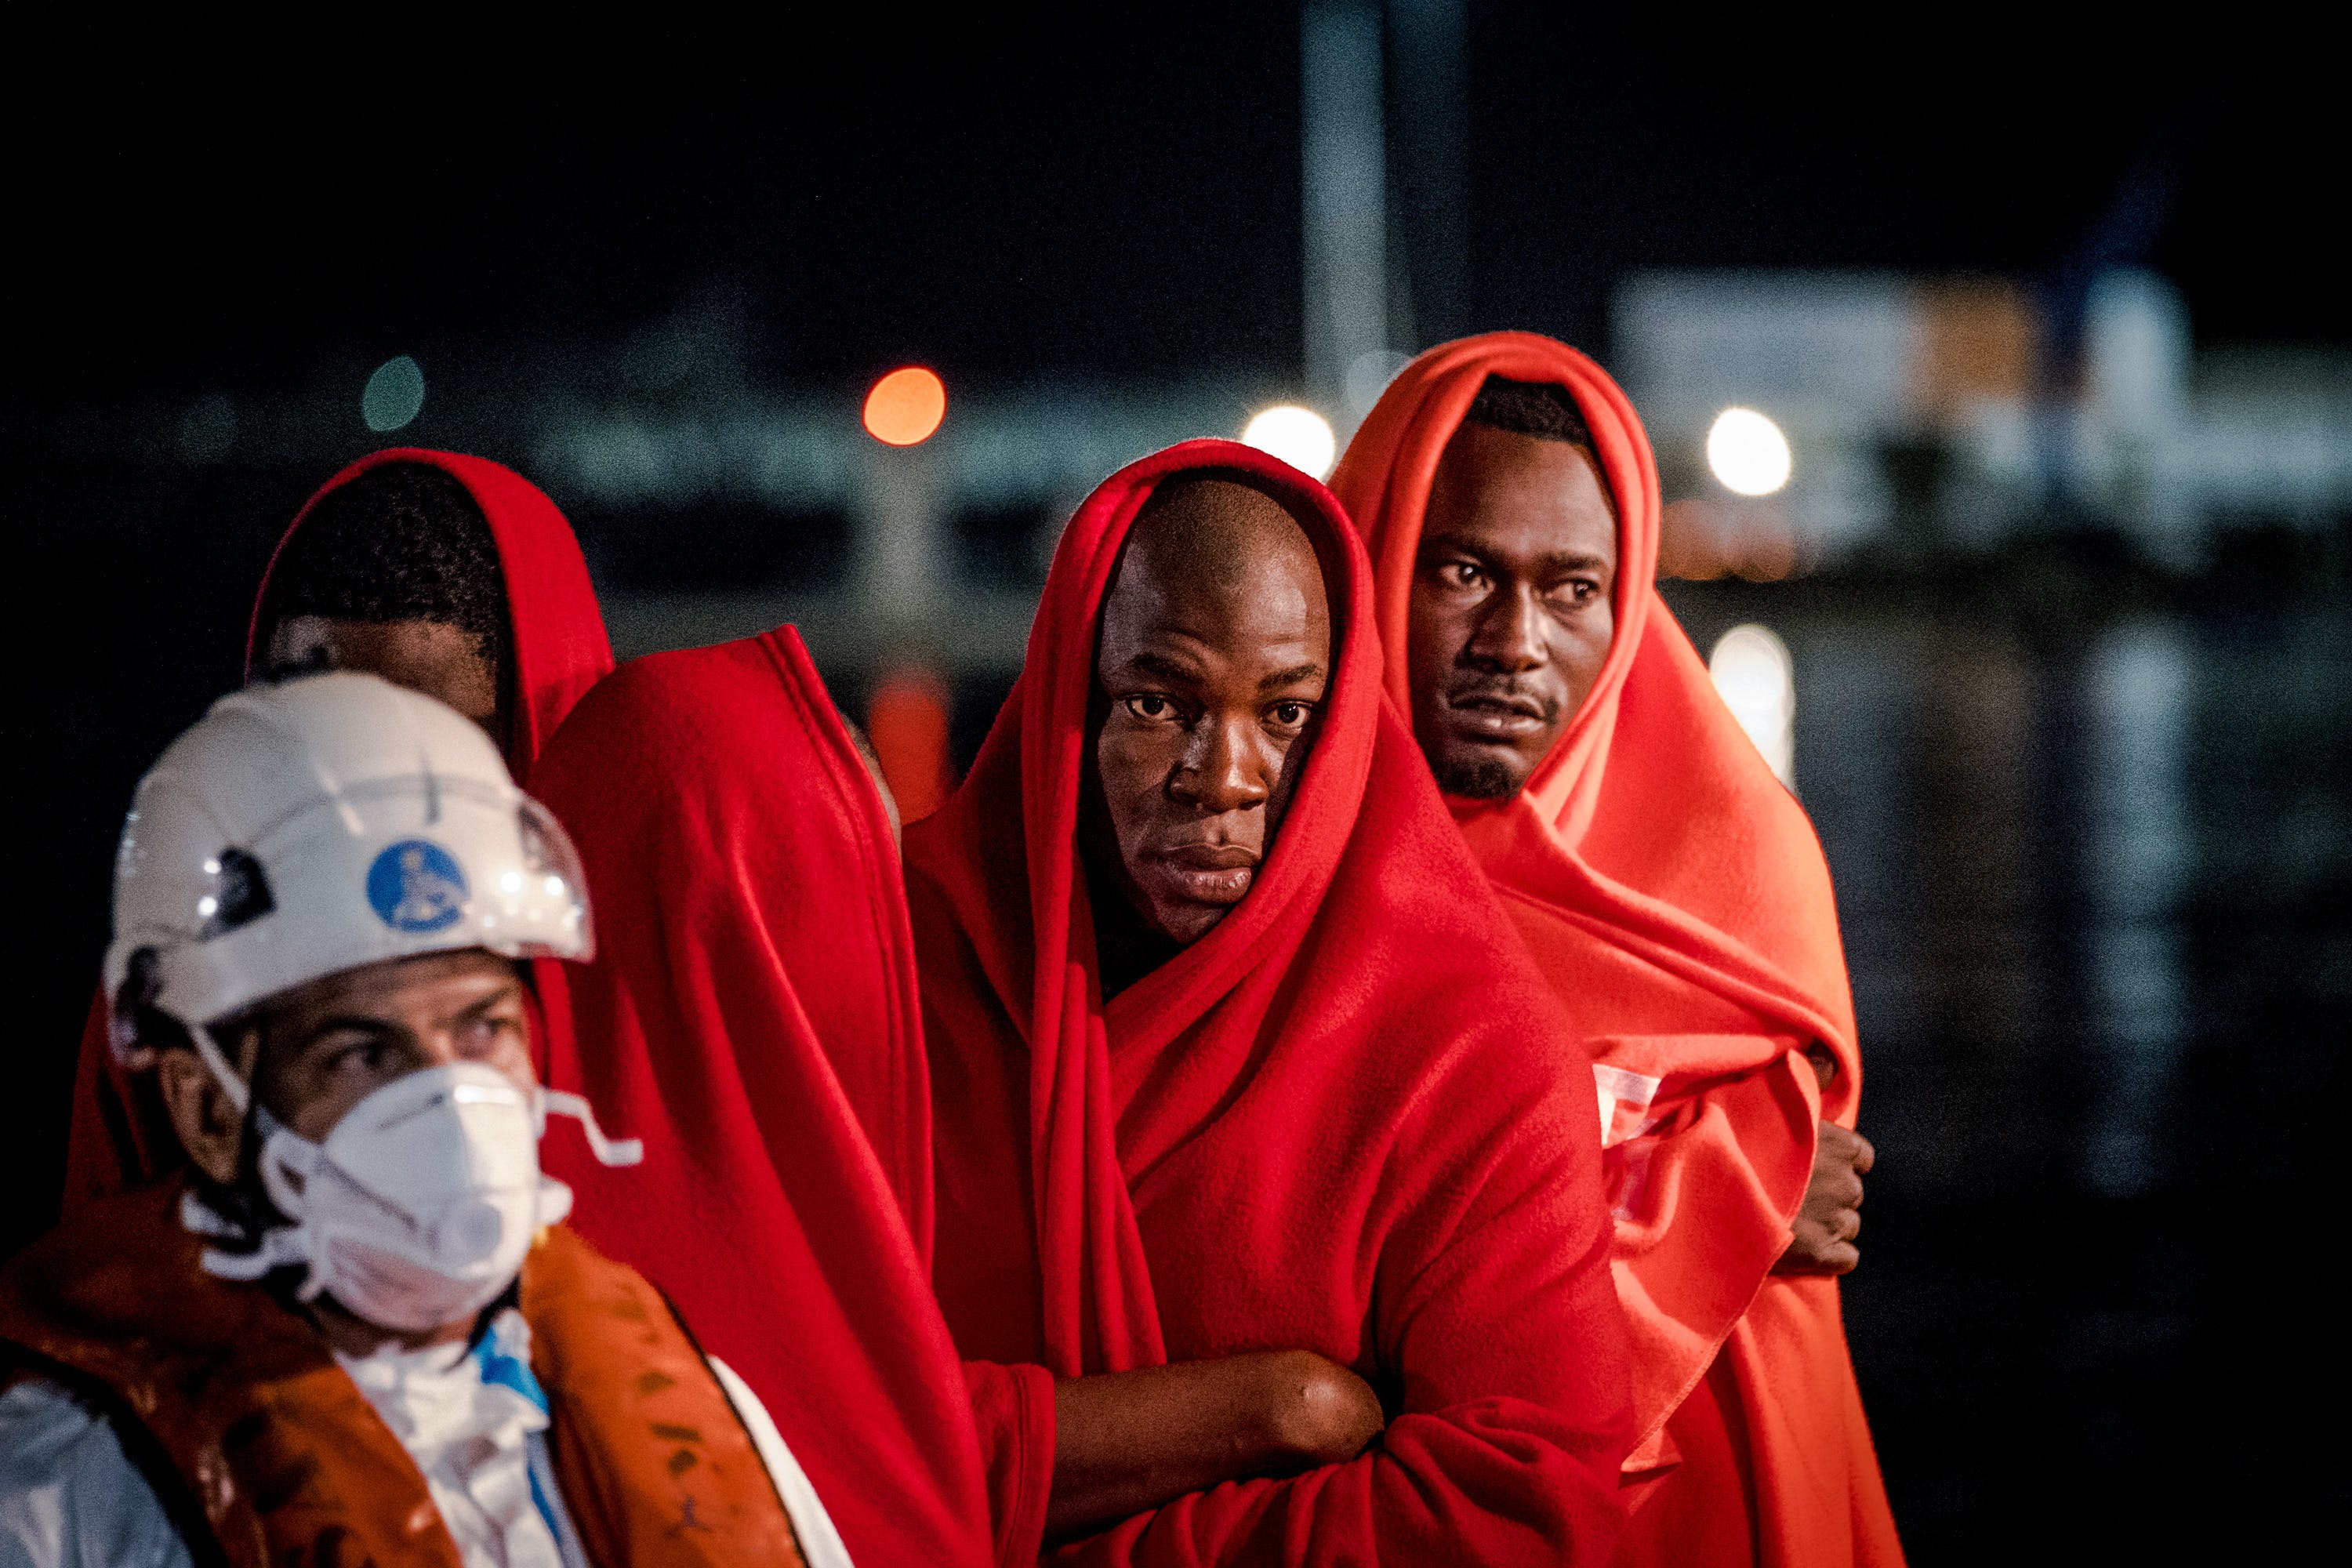 A group of men waits onboard the vessel to disembark at Malaga's port. Even though the number of migrants reaching Europe by sea has considerably decreased, crossing the Mediterranean is still extremely risky. During the five first months of the year 2019, more than 500 persons died.